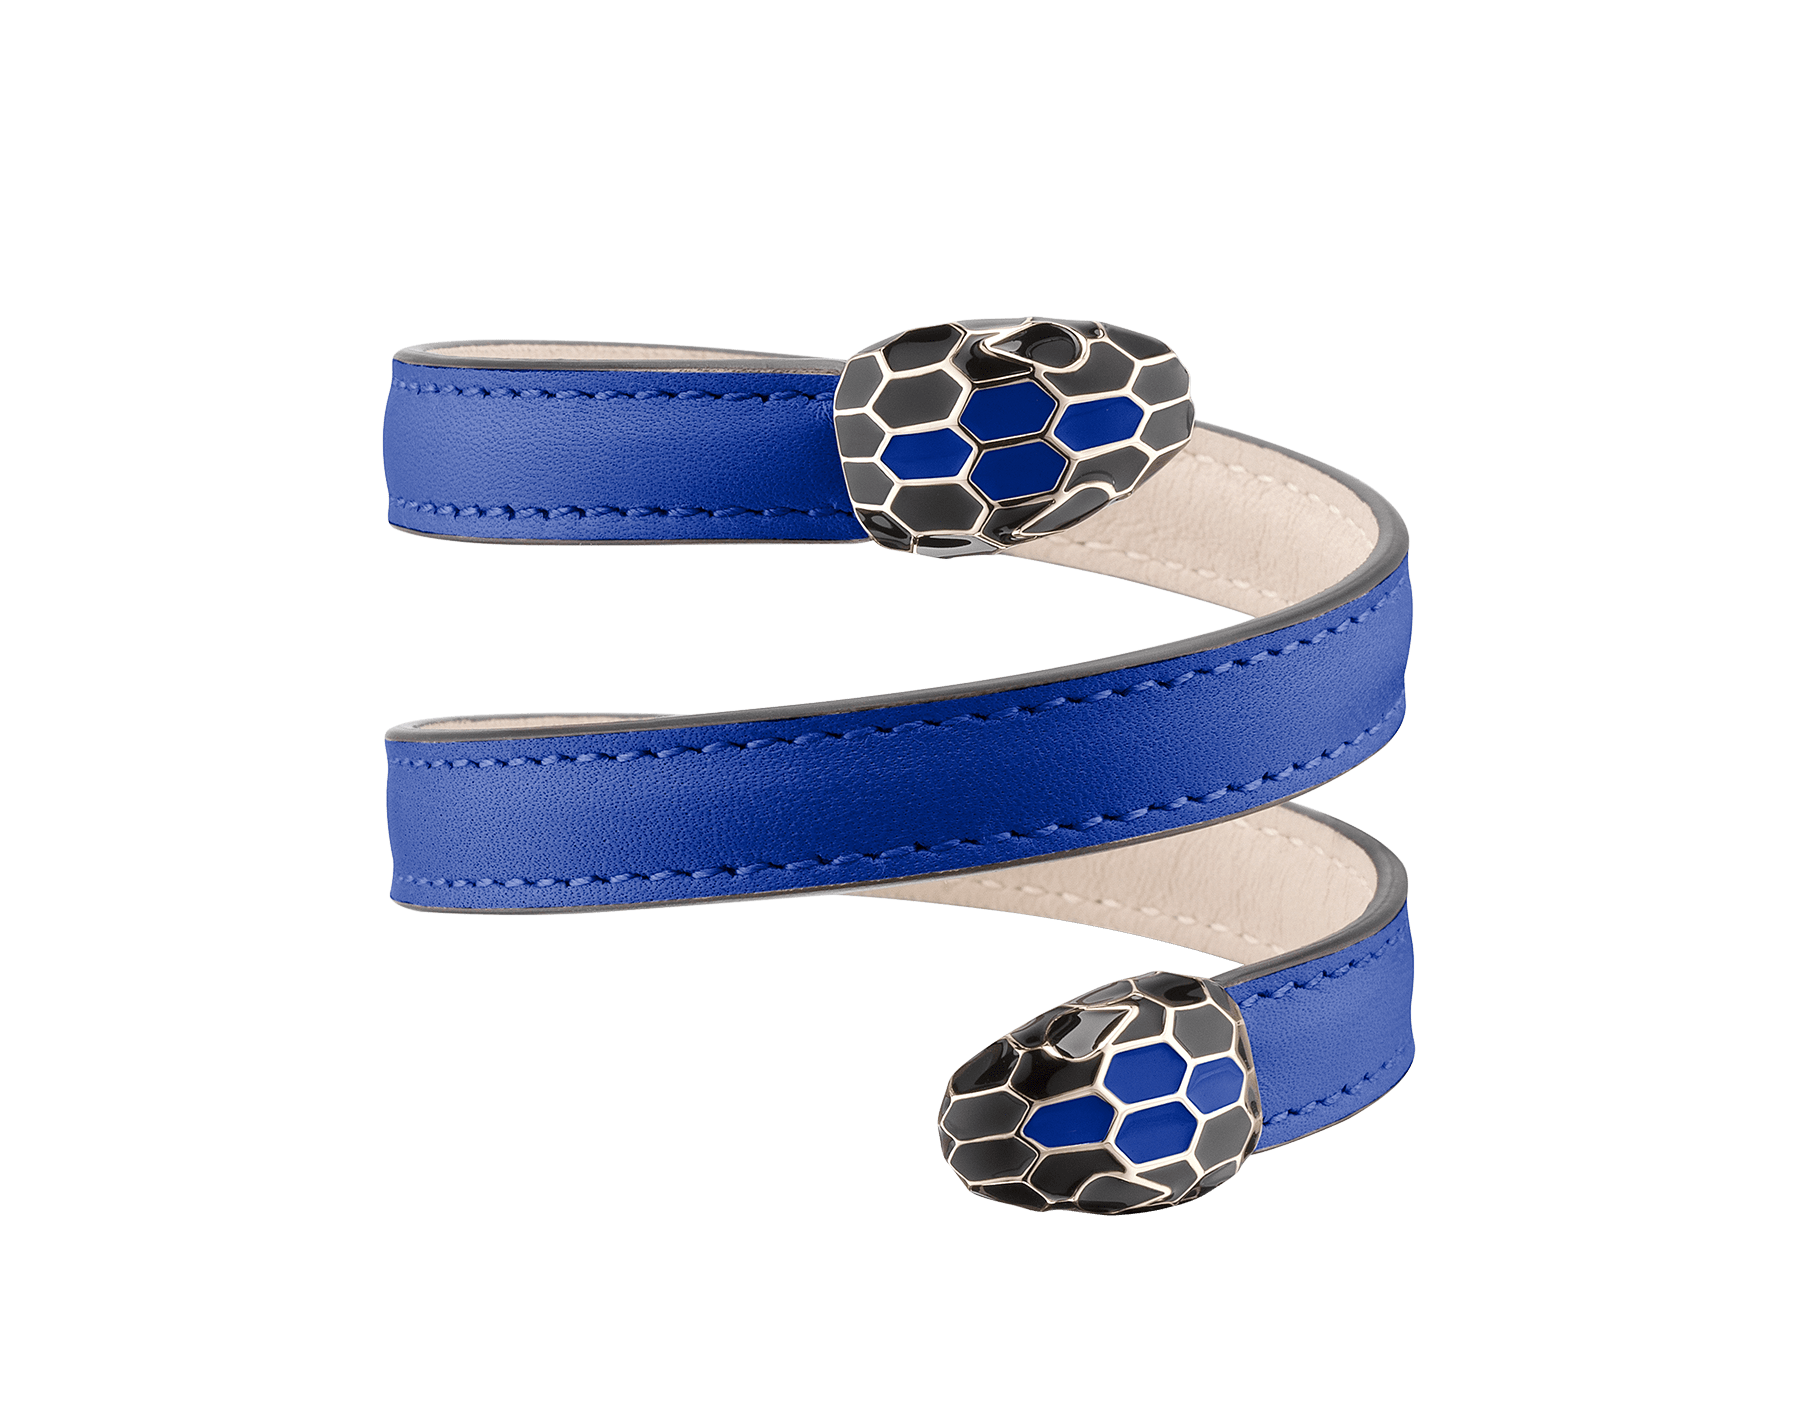 Serpenti Forever multi-coiled rigid Cleopatra bracelet in cobalt tourmaline calf leather, with brass light gold plated hardware. Iconic double snakehead décor in black and cobalt tourmaline enamel, with black enamel eyes Cleopatra-CL-CT image 1